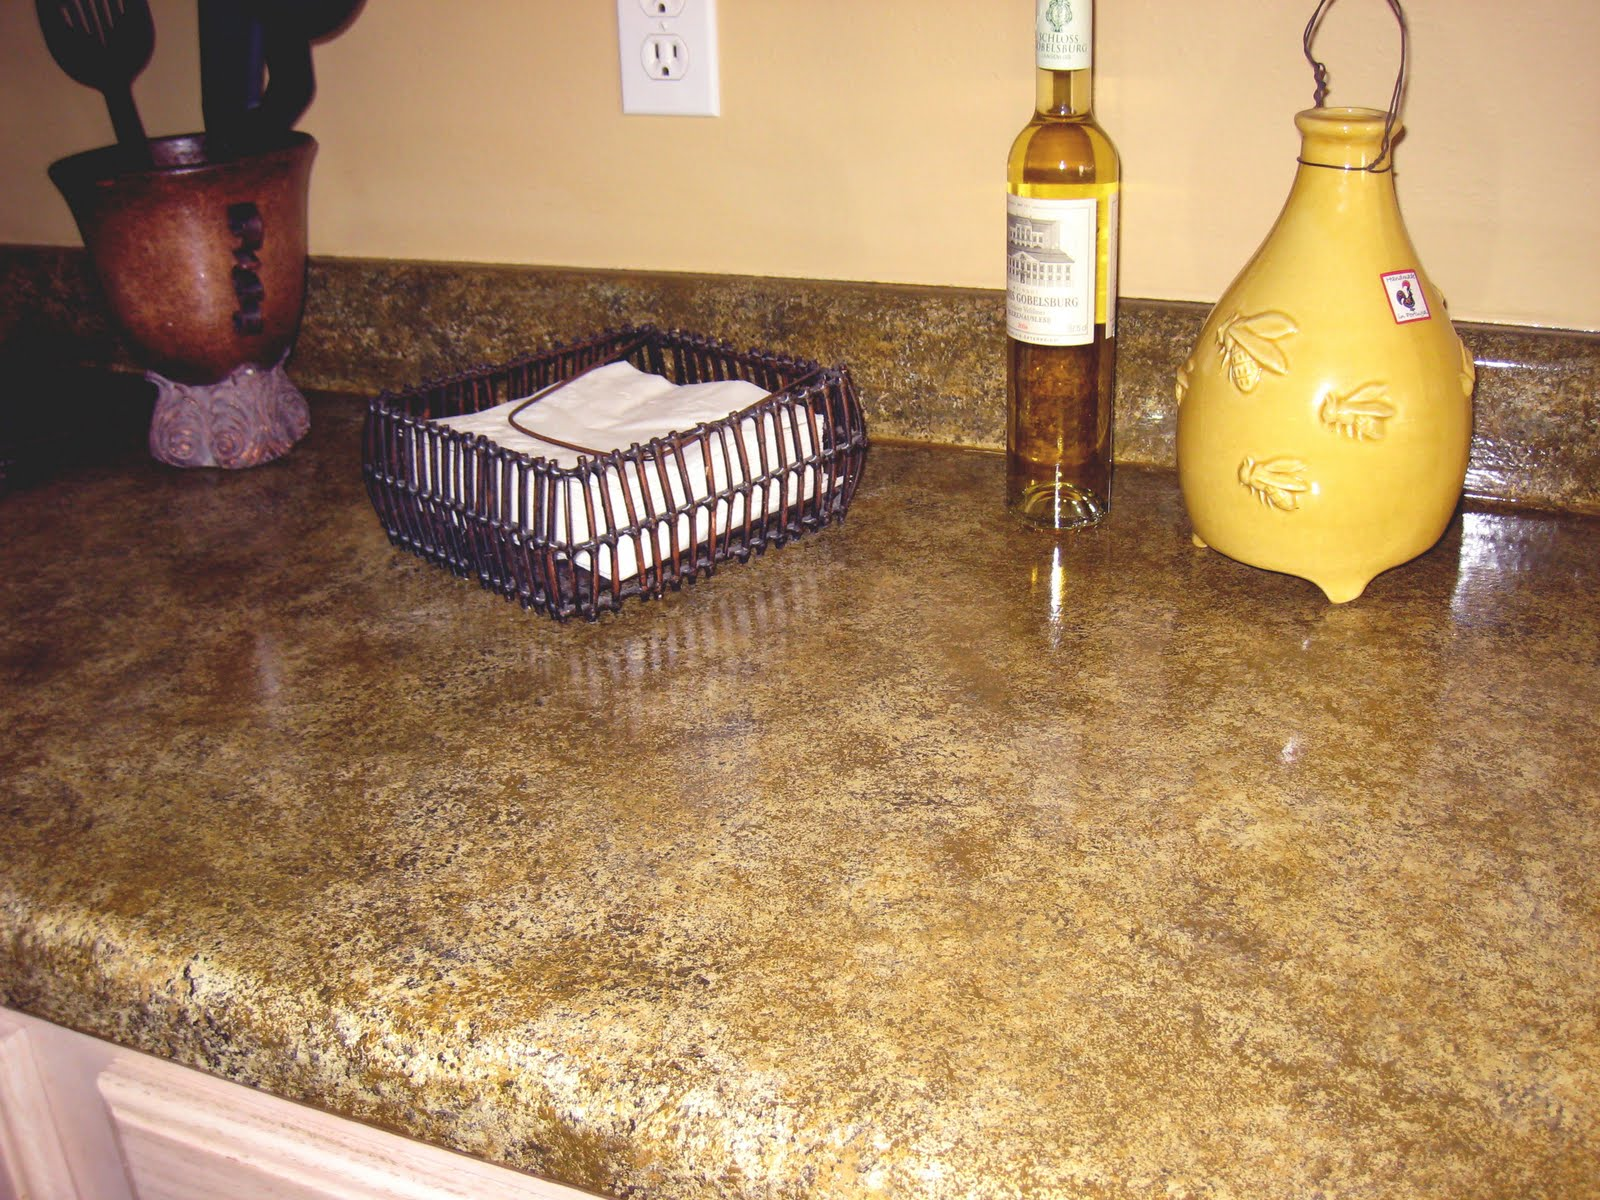 Life in the Enchanted Forest: More countertop magic